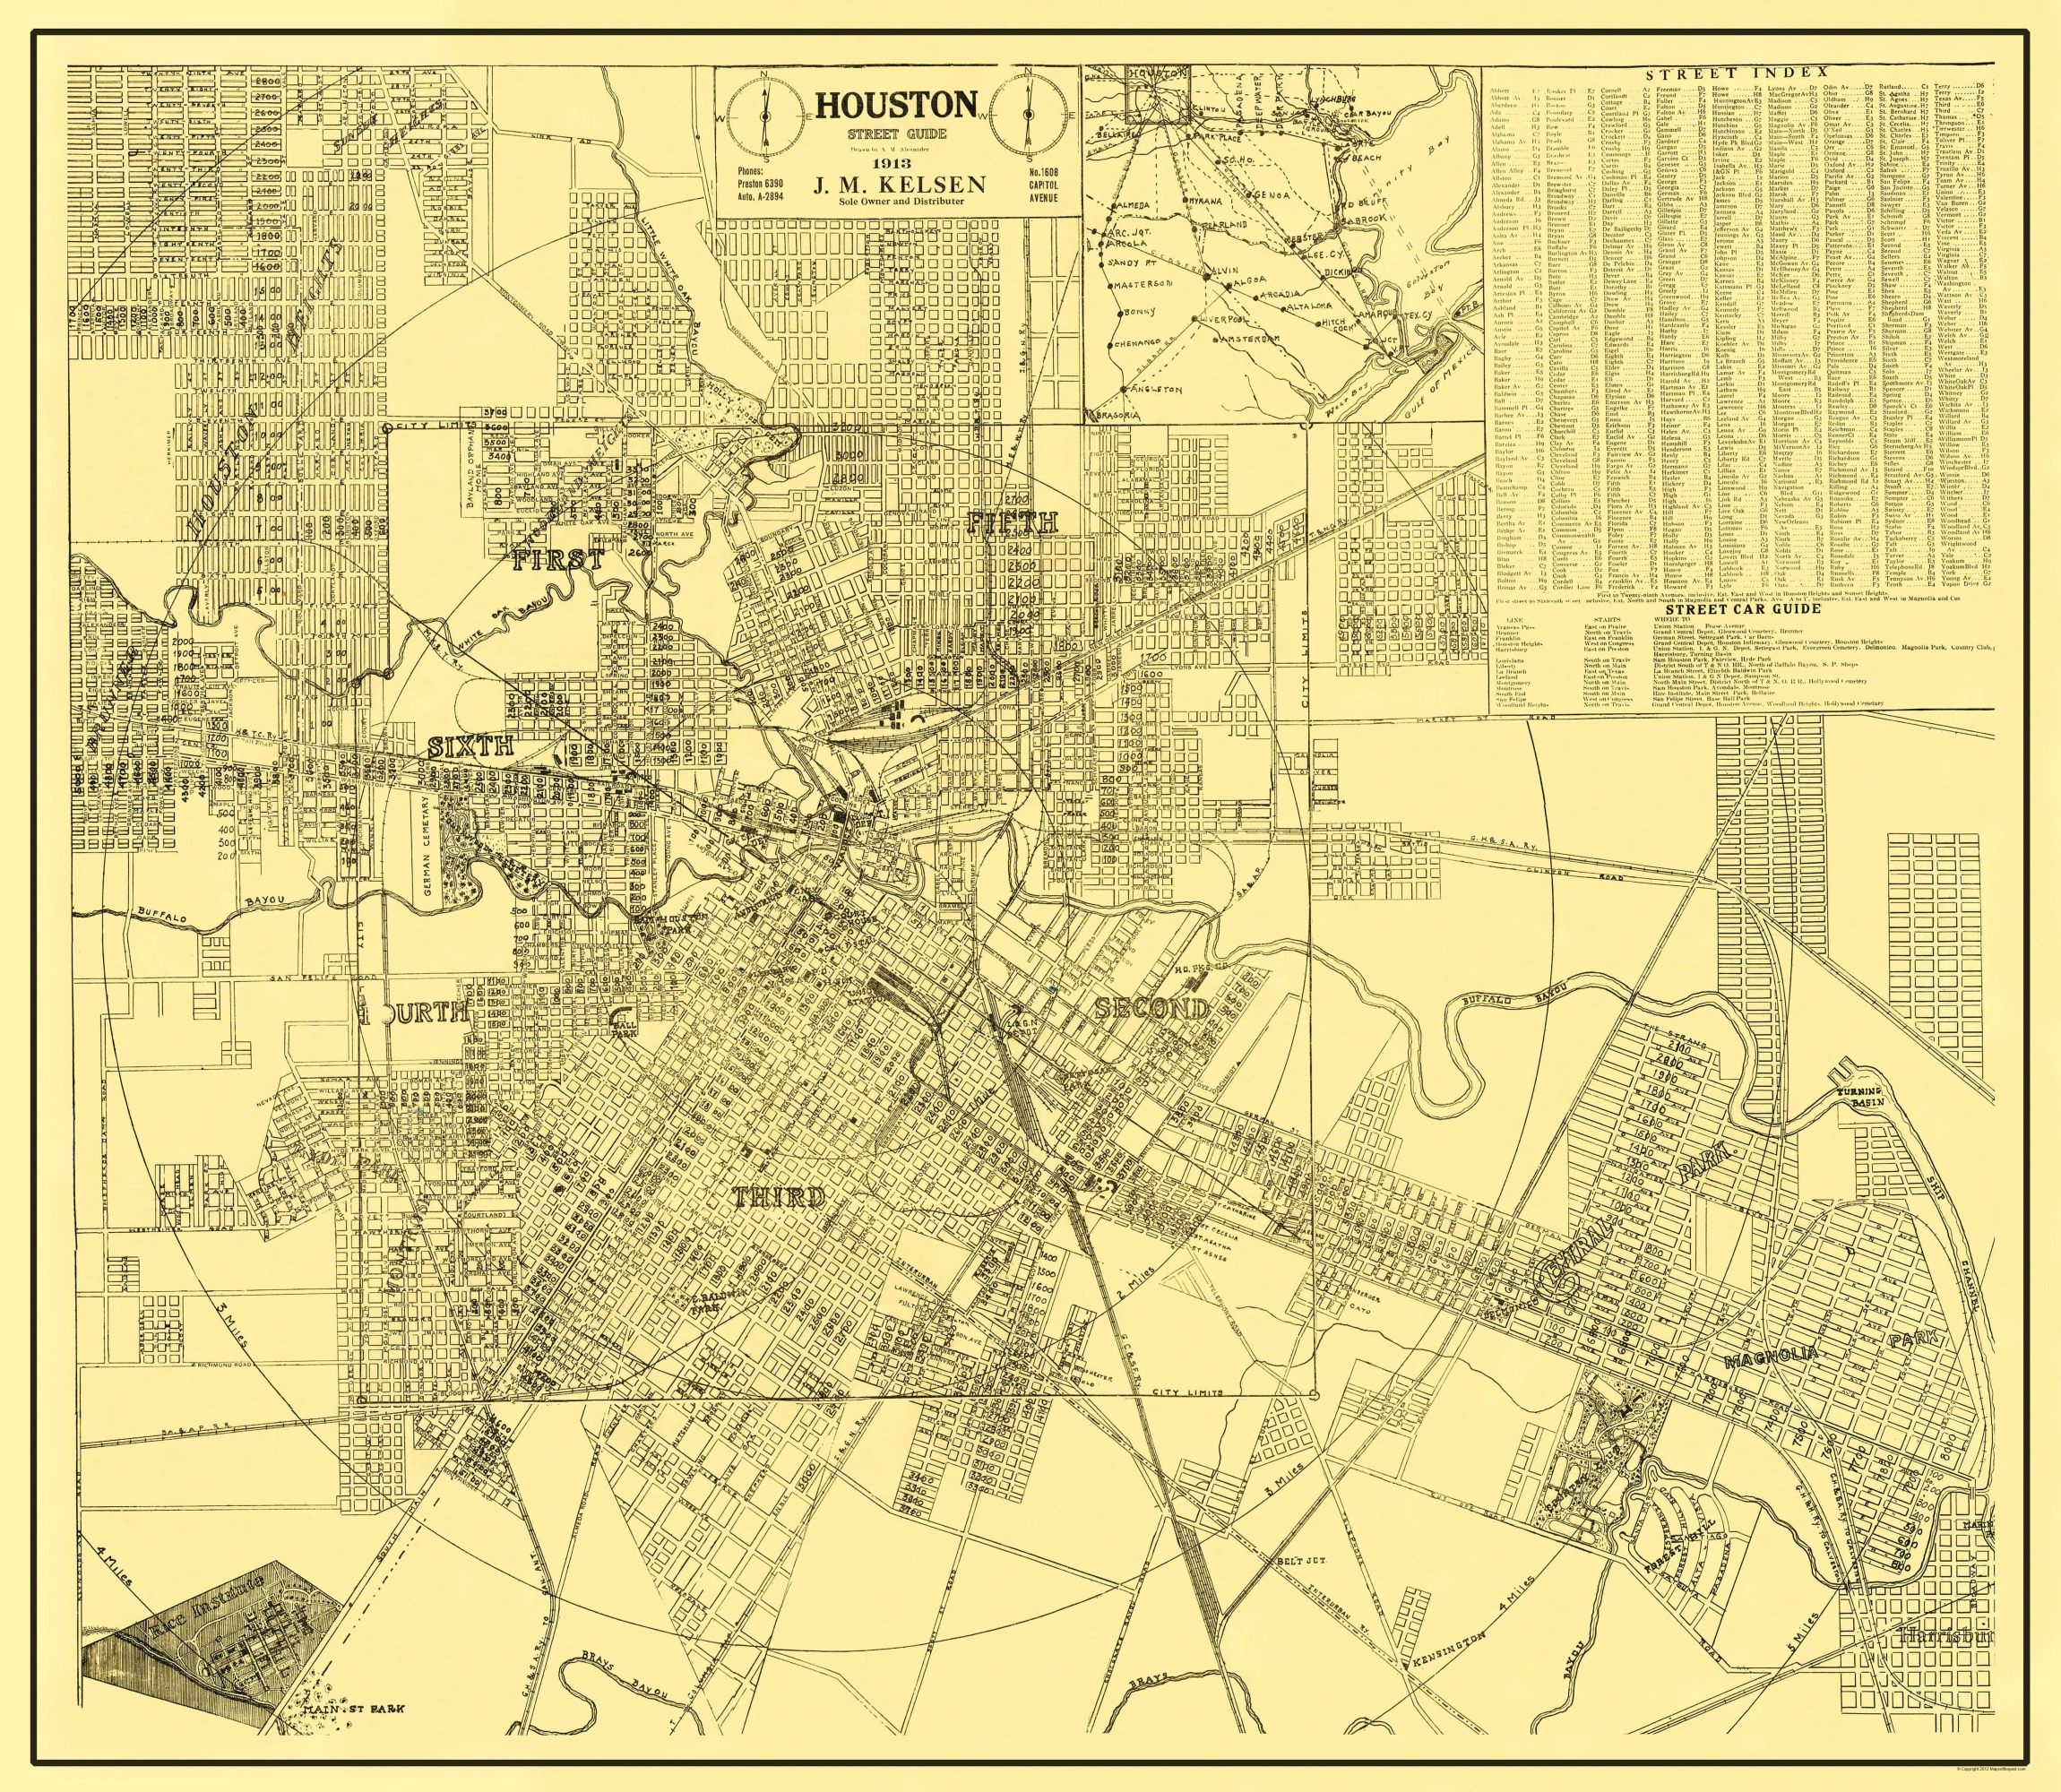 Old City Map - Houston Texas Street Guide - 1913 - Old Texas Maps Prints